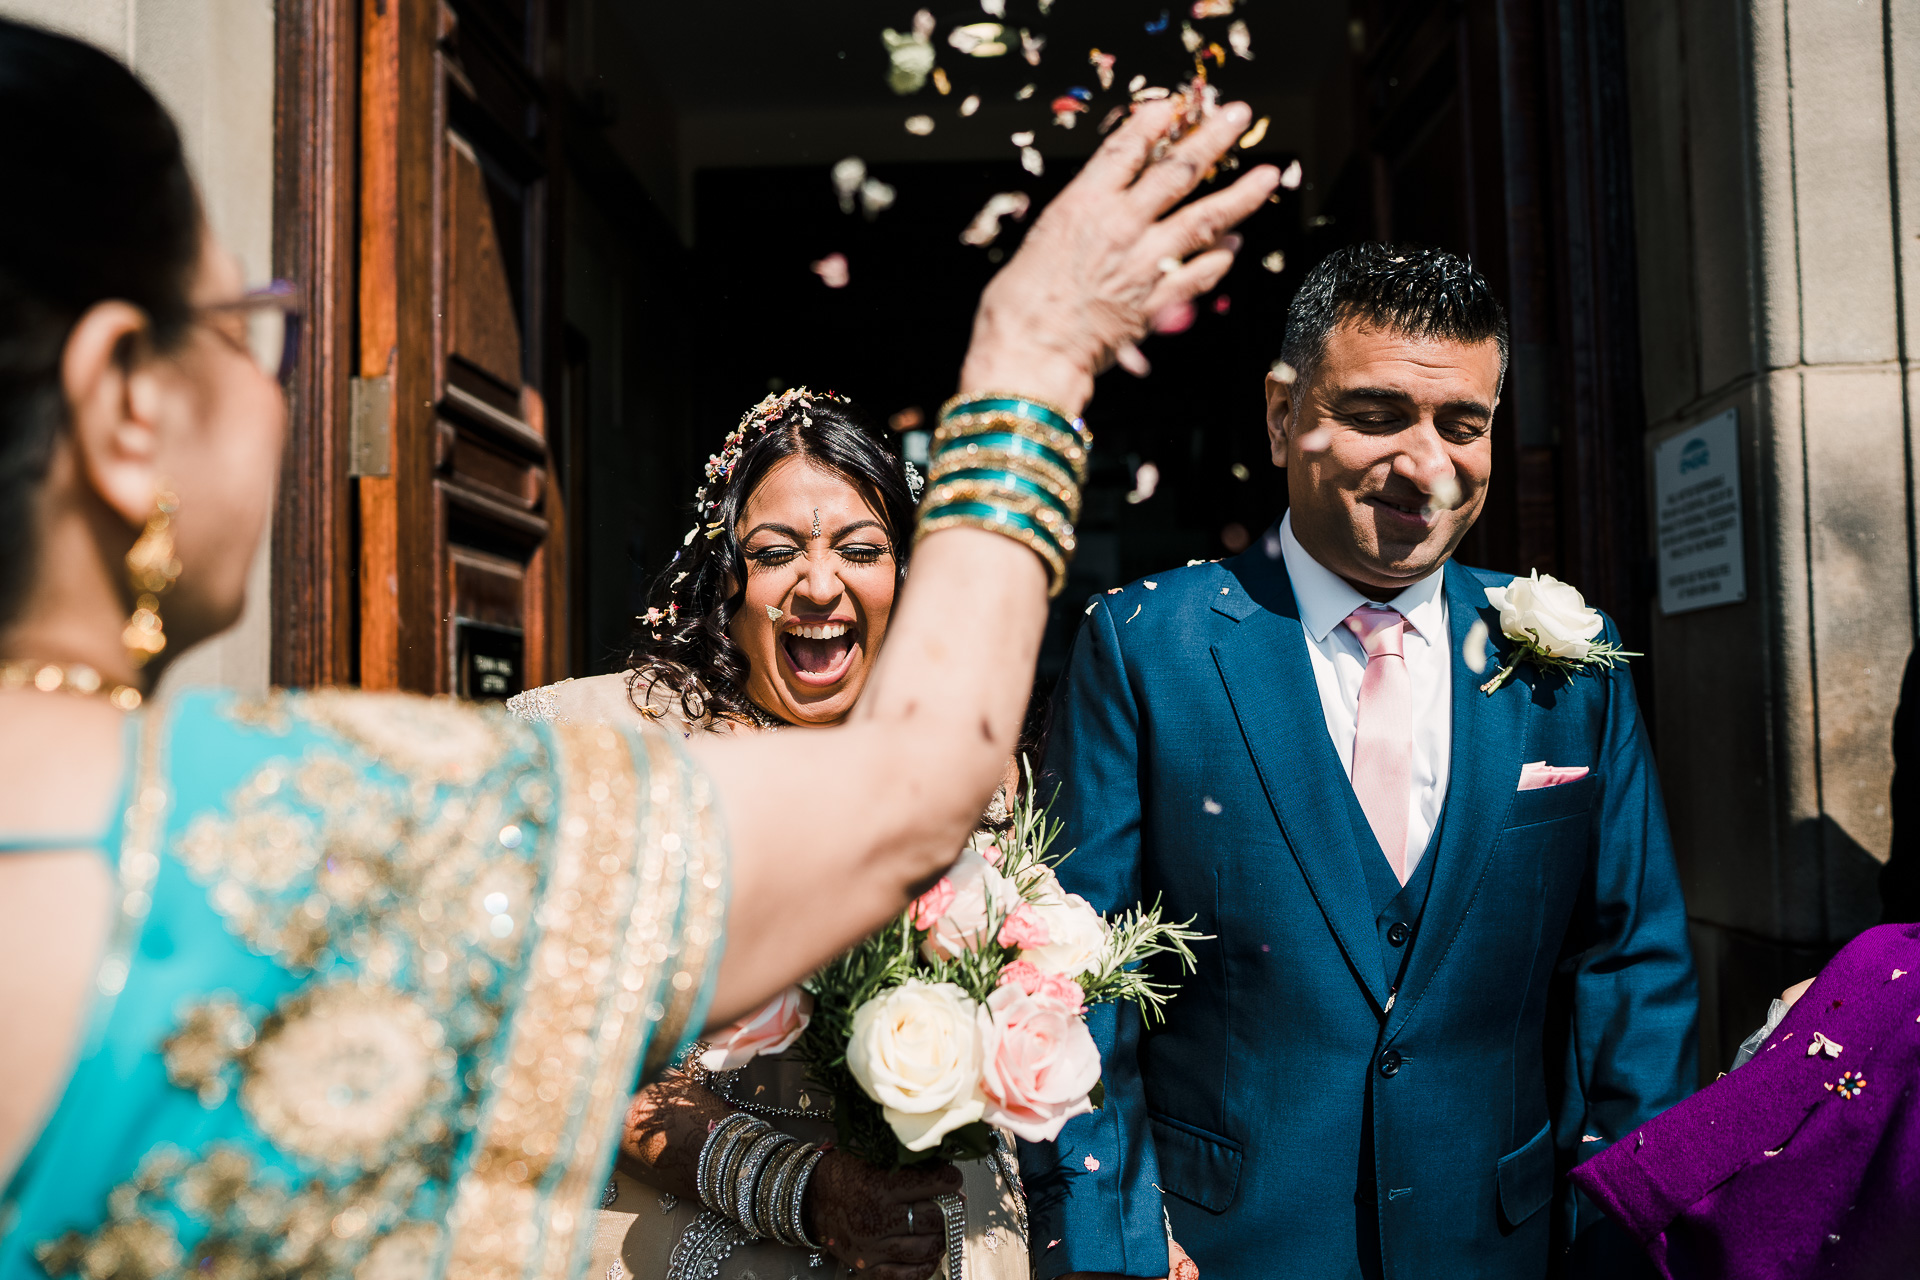 sale town hall, manchester wedding photographer, manchester wedding photography, micro wedding manchester, manchester wedding, fun wedding photography, creative wedding photography